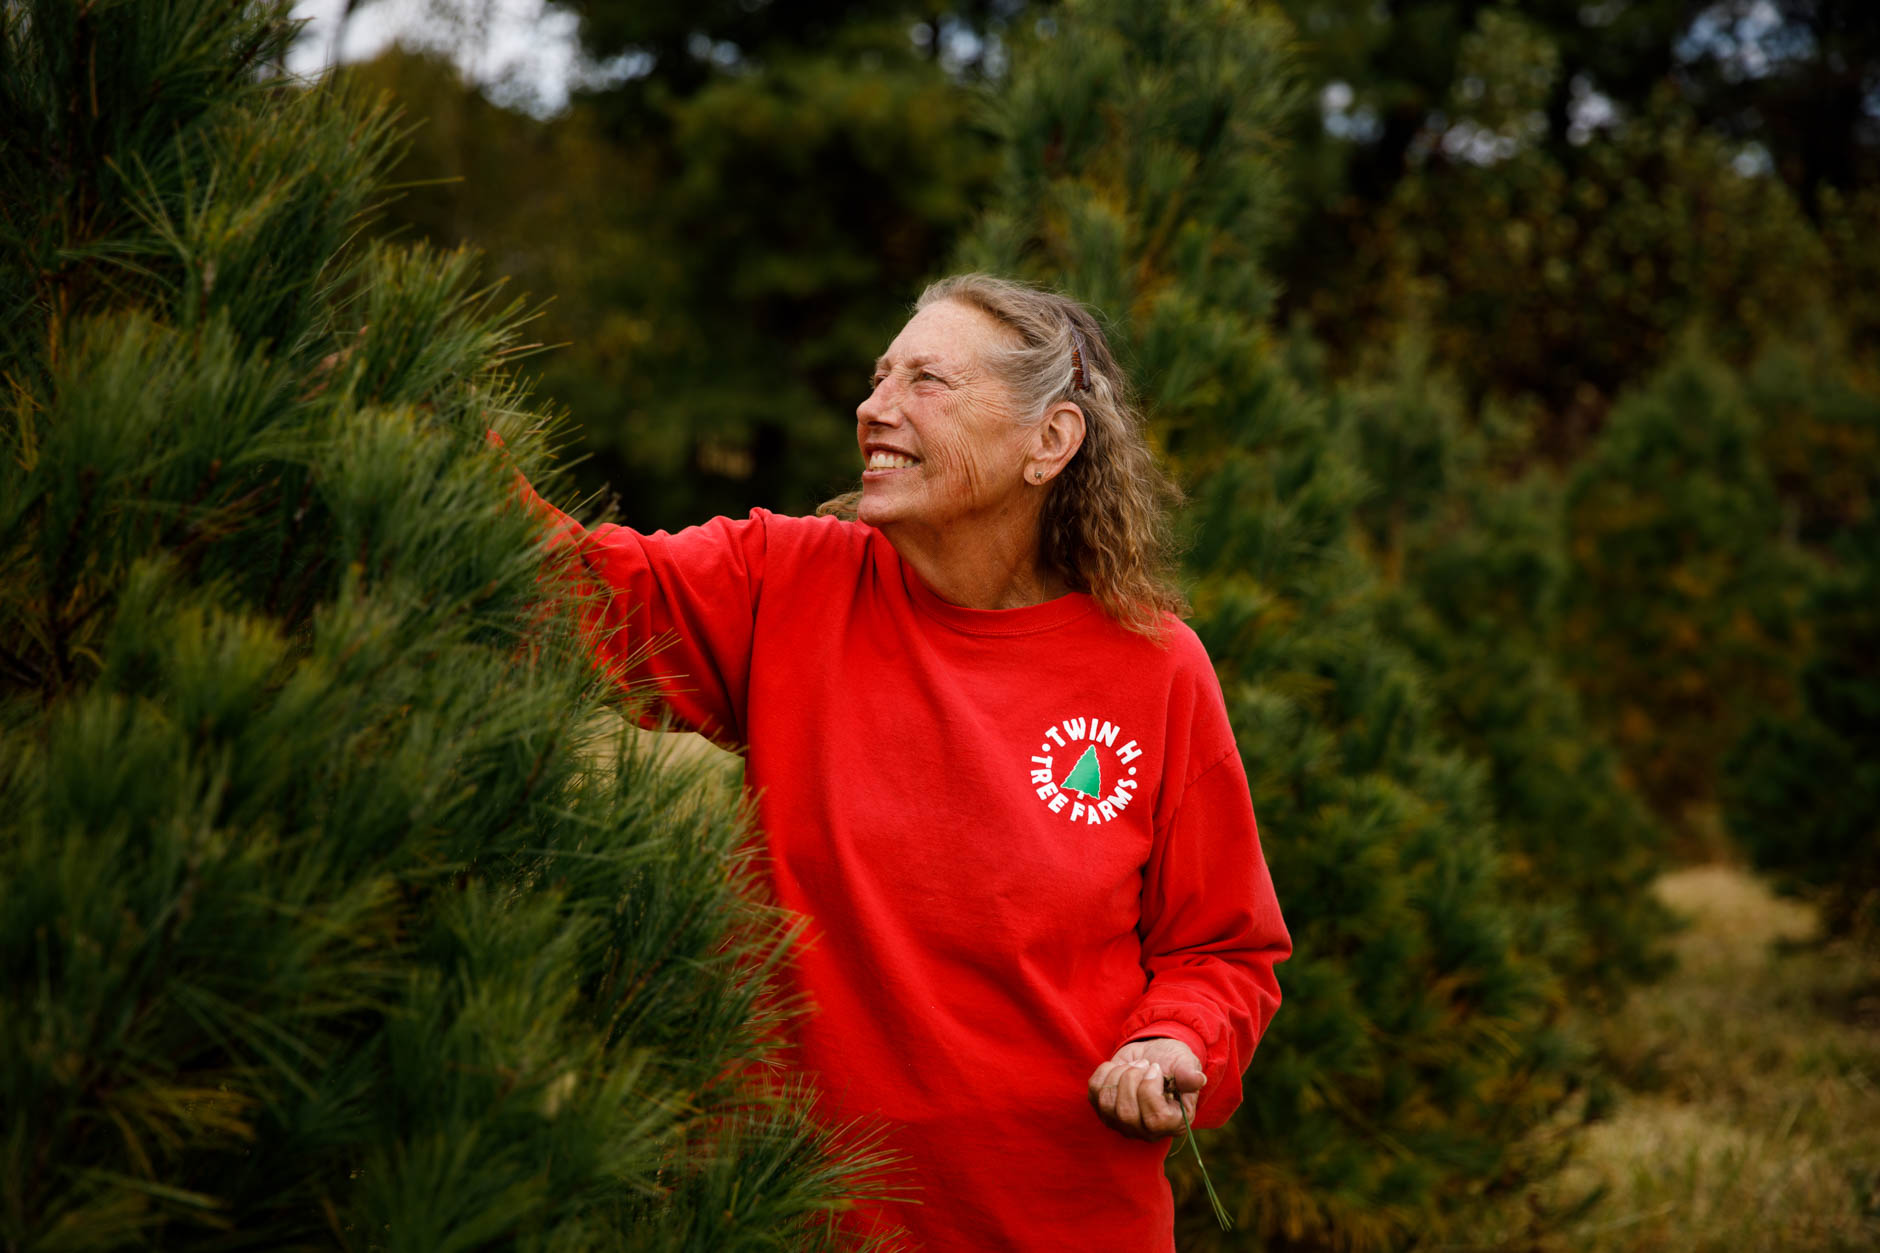 Twin H Tree Farms President Jeanne Hopwood inspects a Christmas tree at the farm near Bloomington on Tuesday, Oct. 15, 2019. (James Brosher/Indiana University)